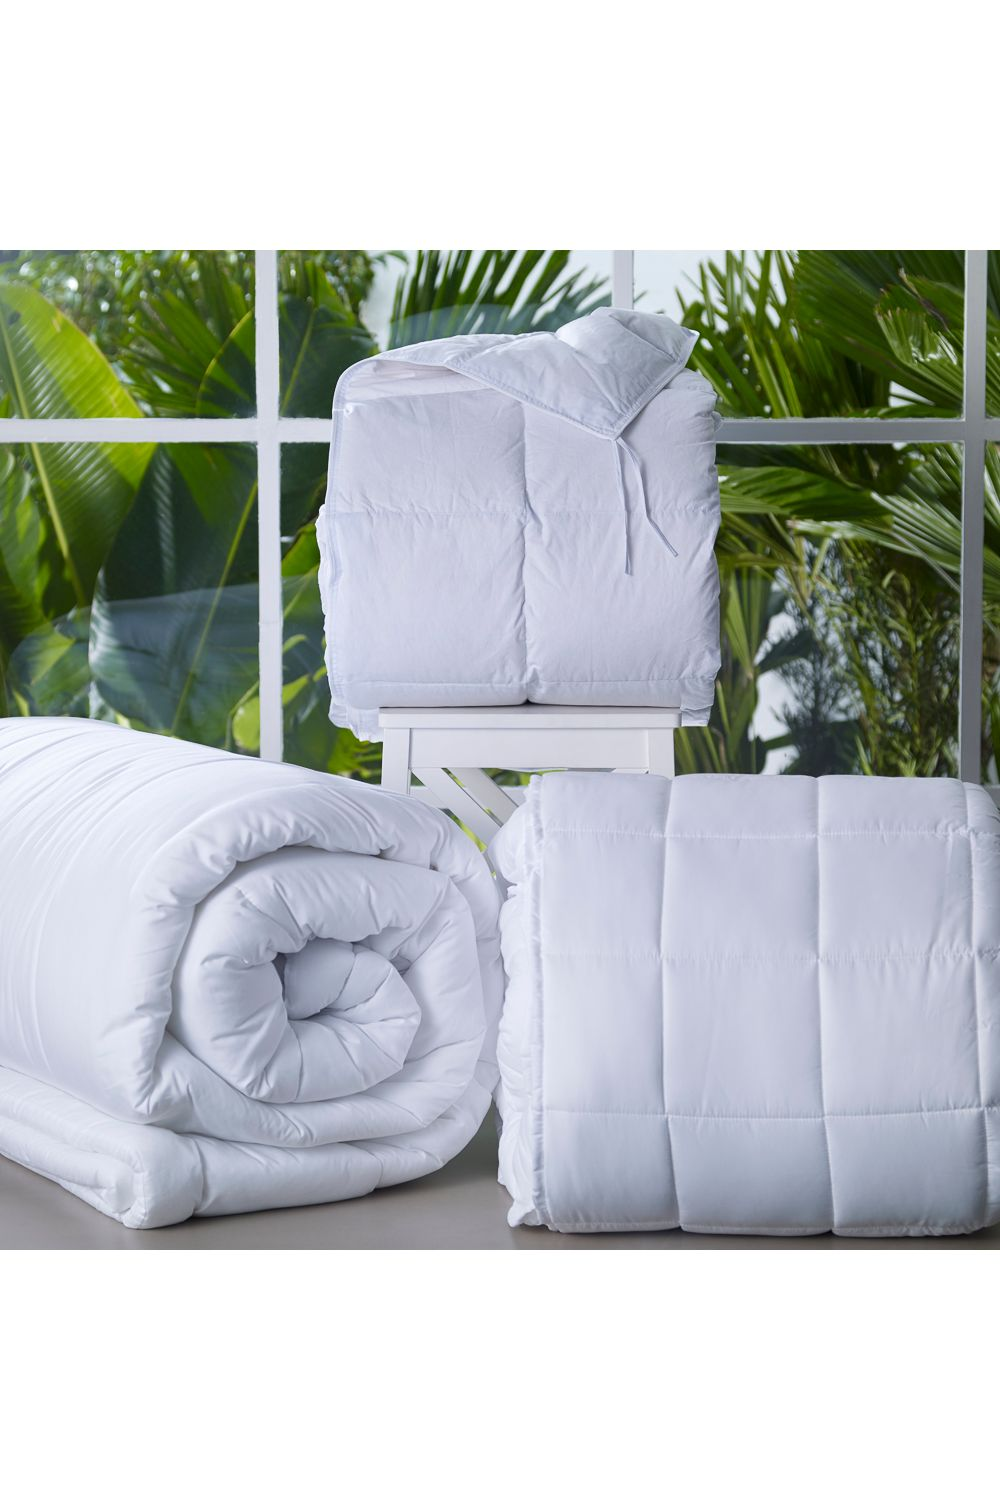 0810010083_999_2-RECHEIO-DUVET-ALL-SEASONS-CASAL